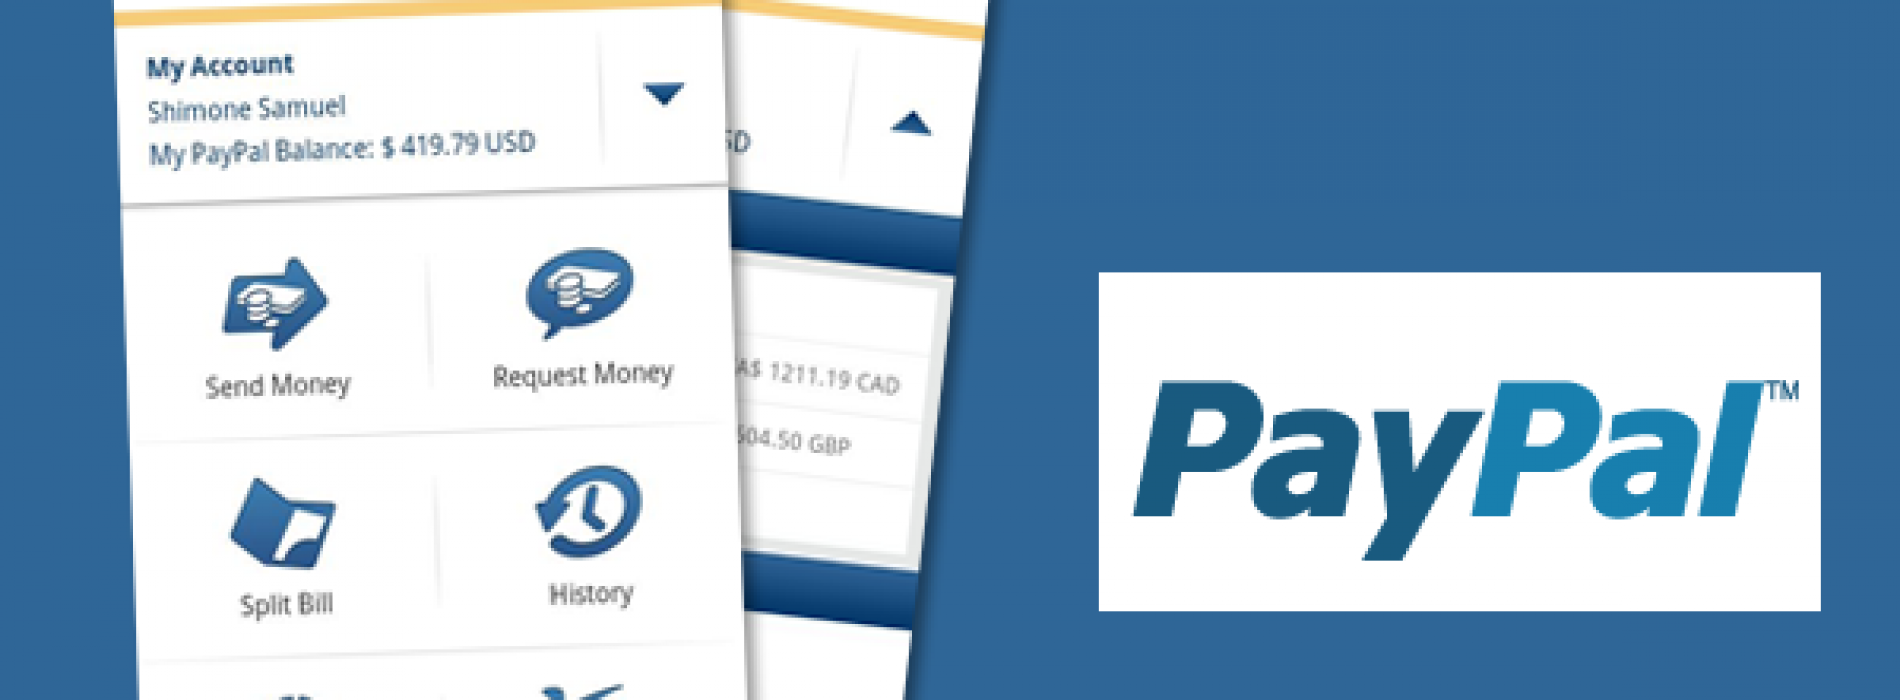 PayPal 3.0 update include support for NFC